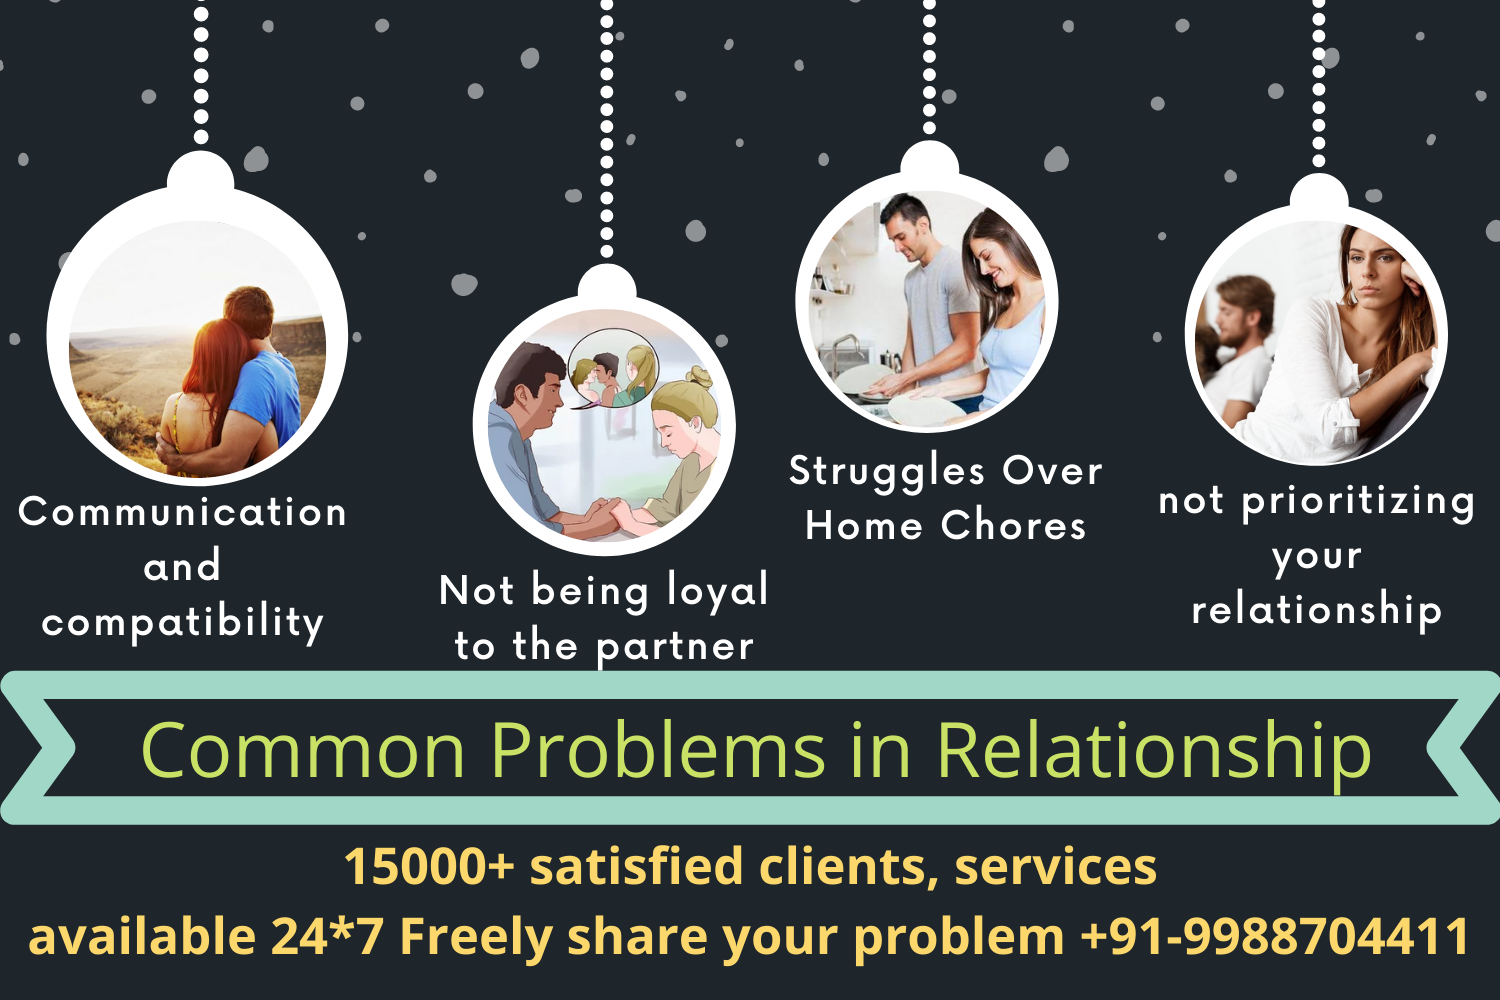 Common Problems in Relationship